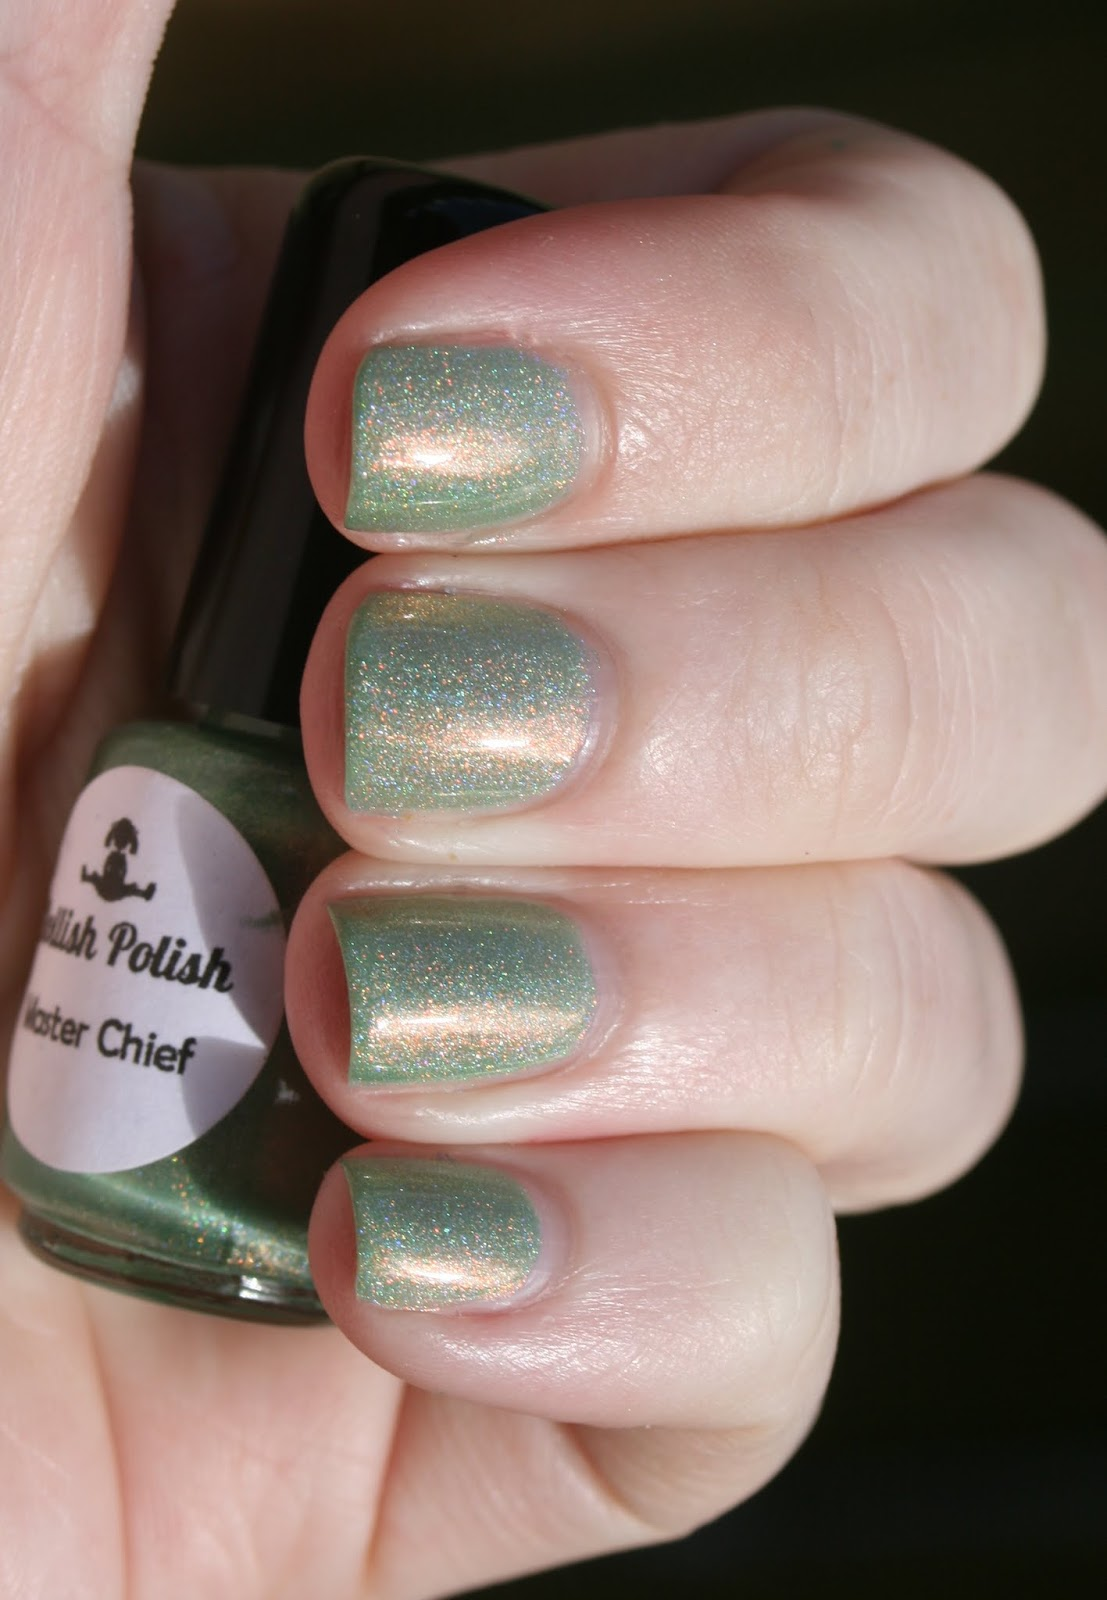 Dollish Polish Master Chief swatch